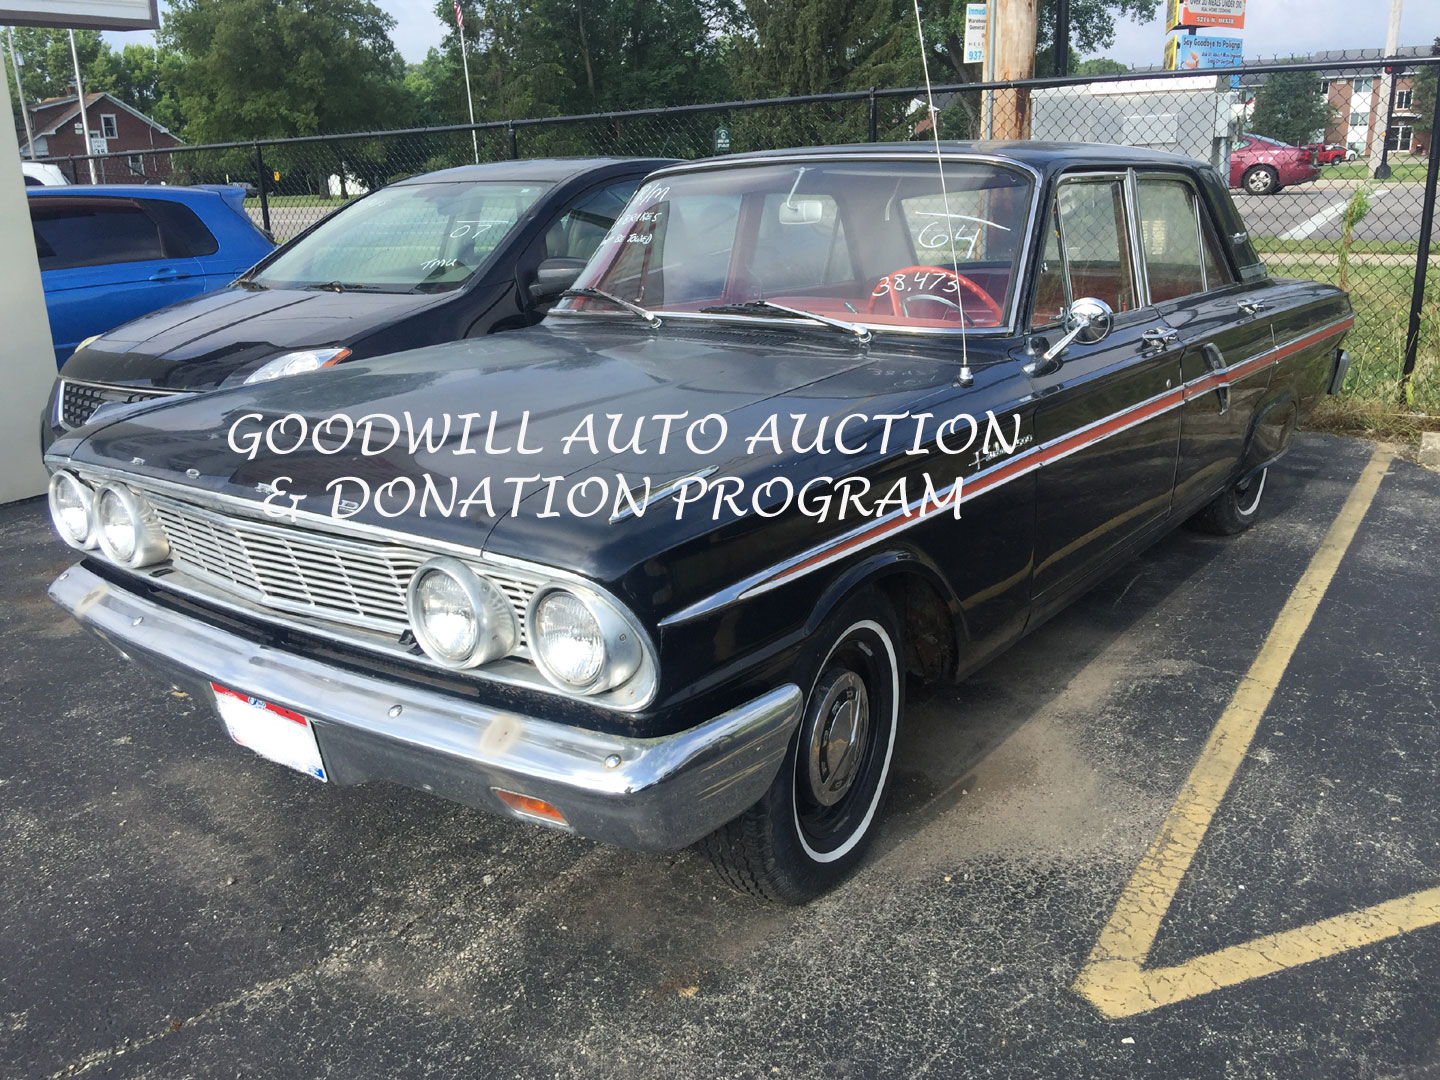 1964 FORD FAIRLANE 500-SALE DATE 8/10/19 | Goodwill Auto Auction